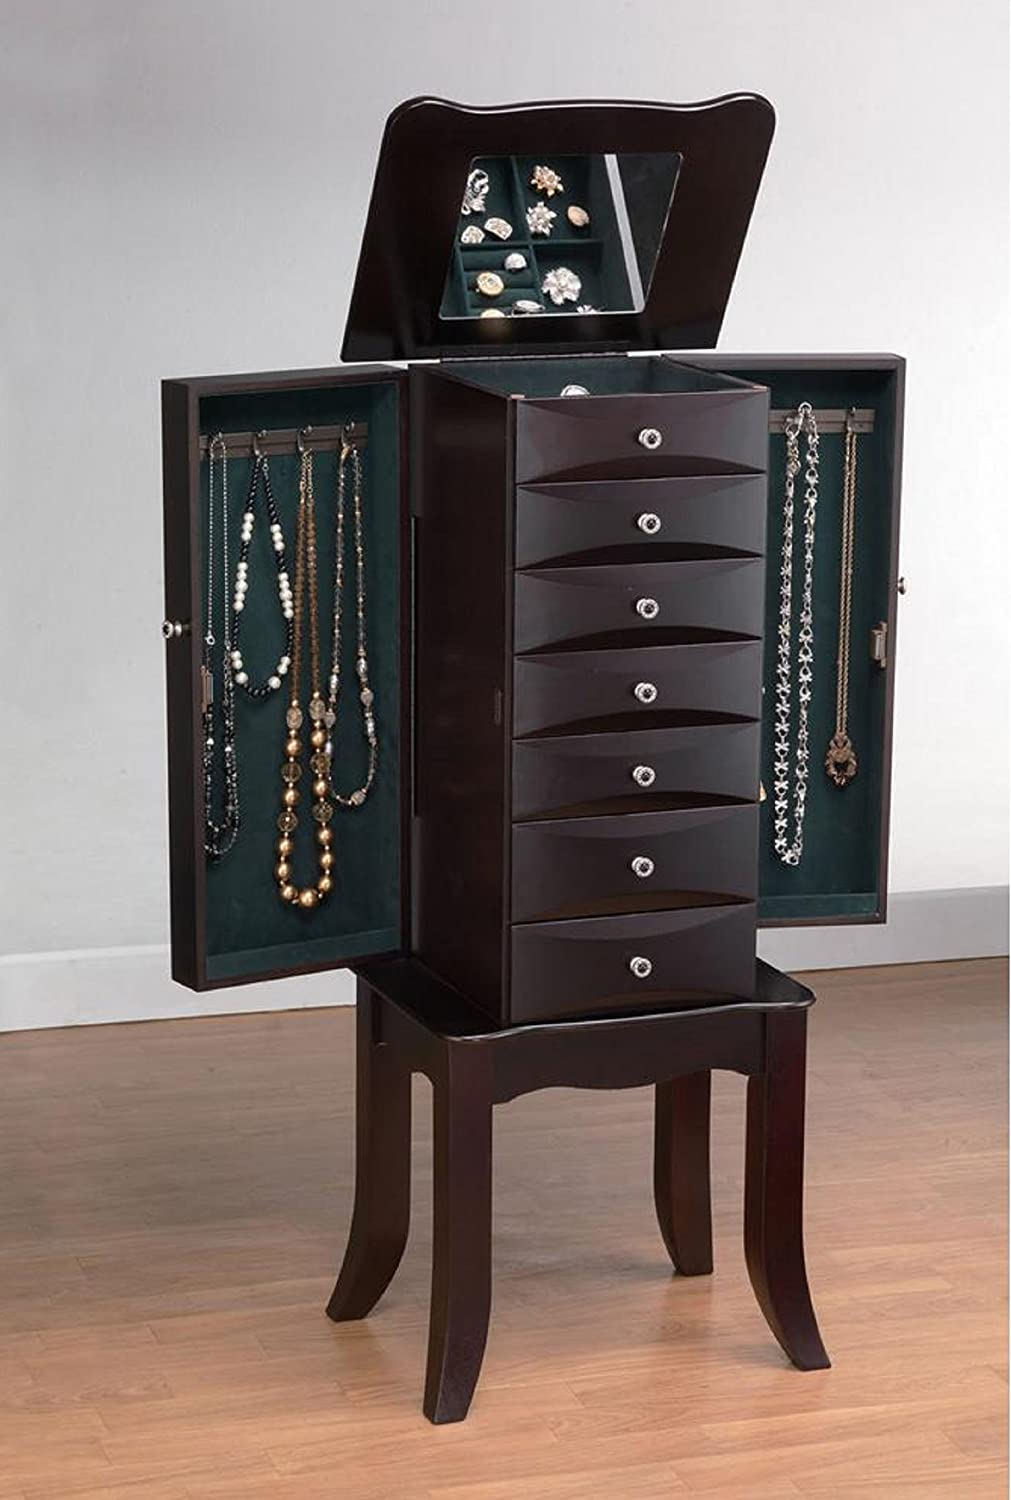 Major-Q 9016000 Java Finish Classy Jewelry Armoire with Storage Drawers and Hidden Mirror